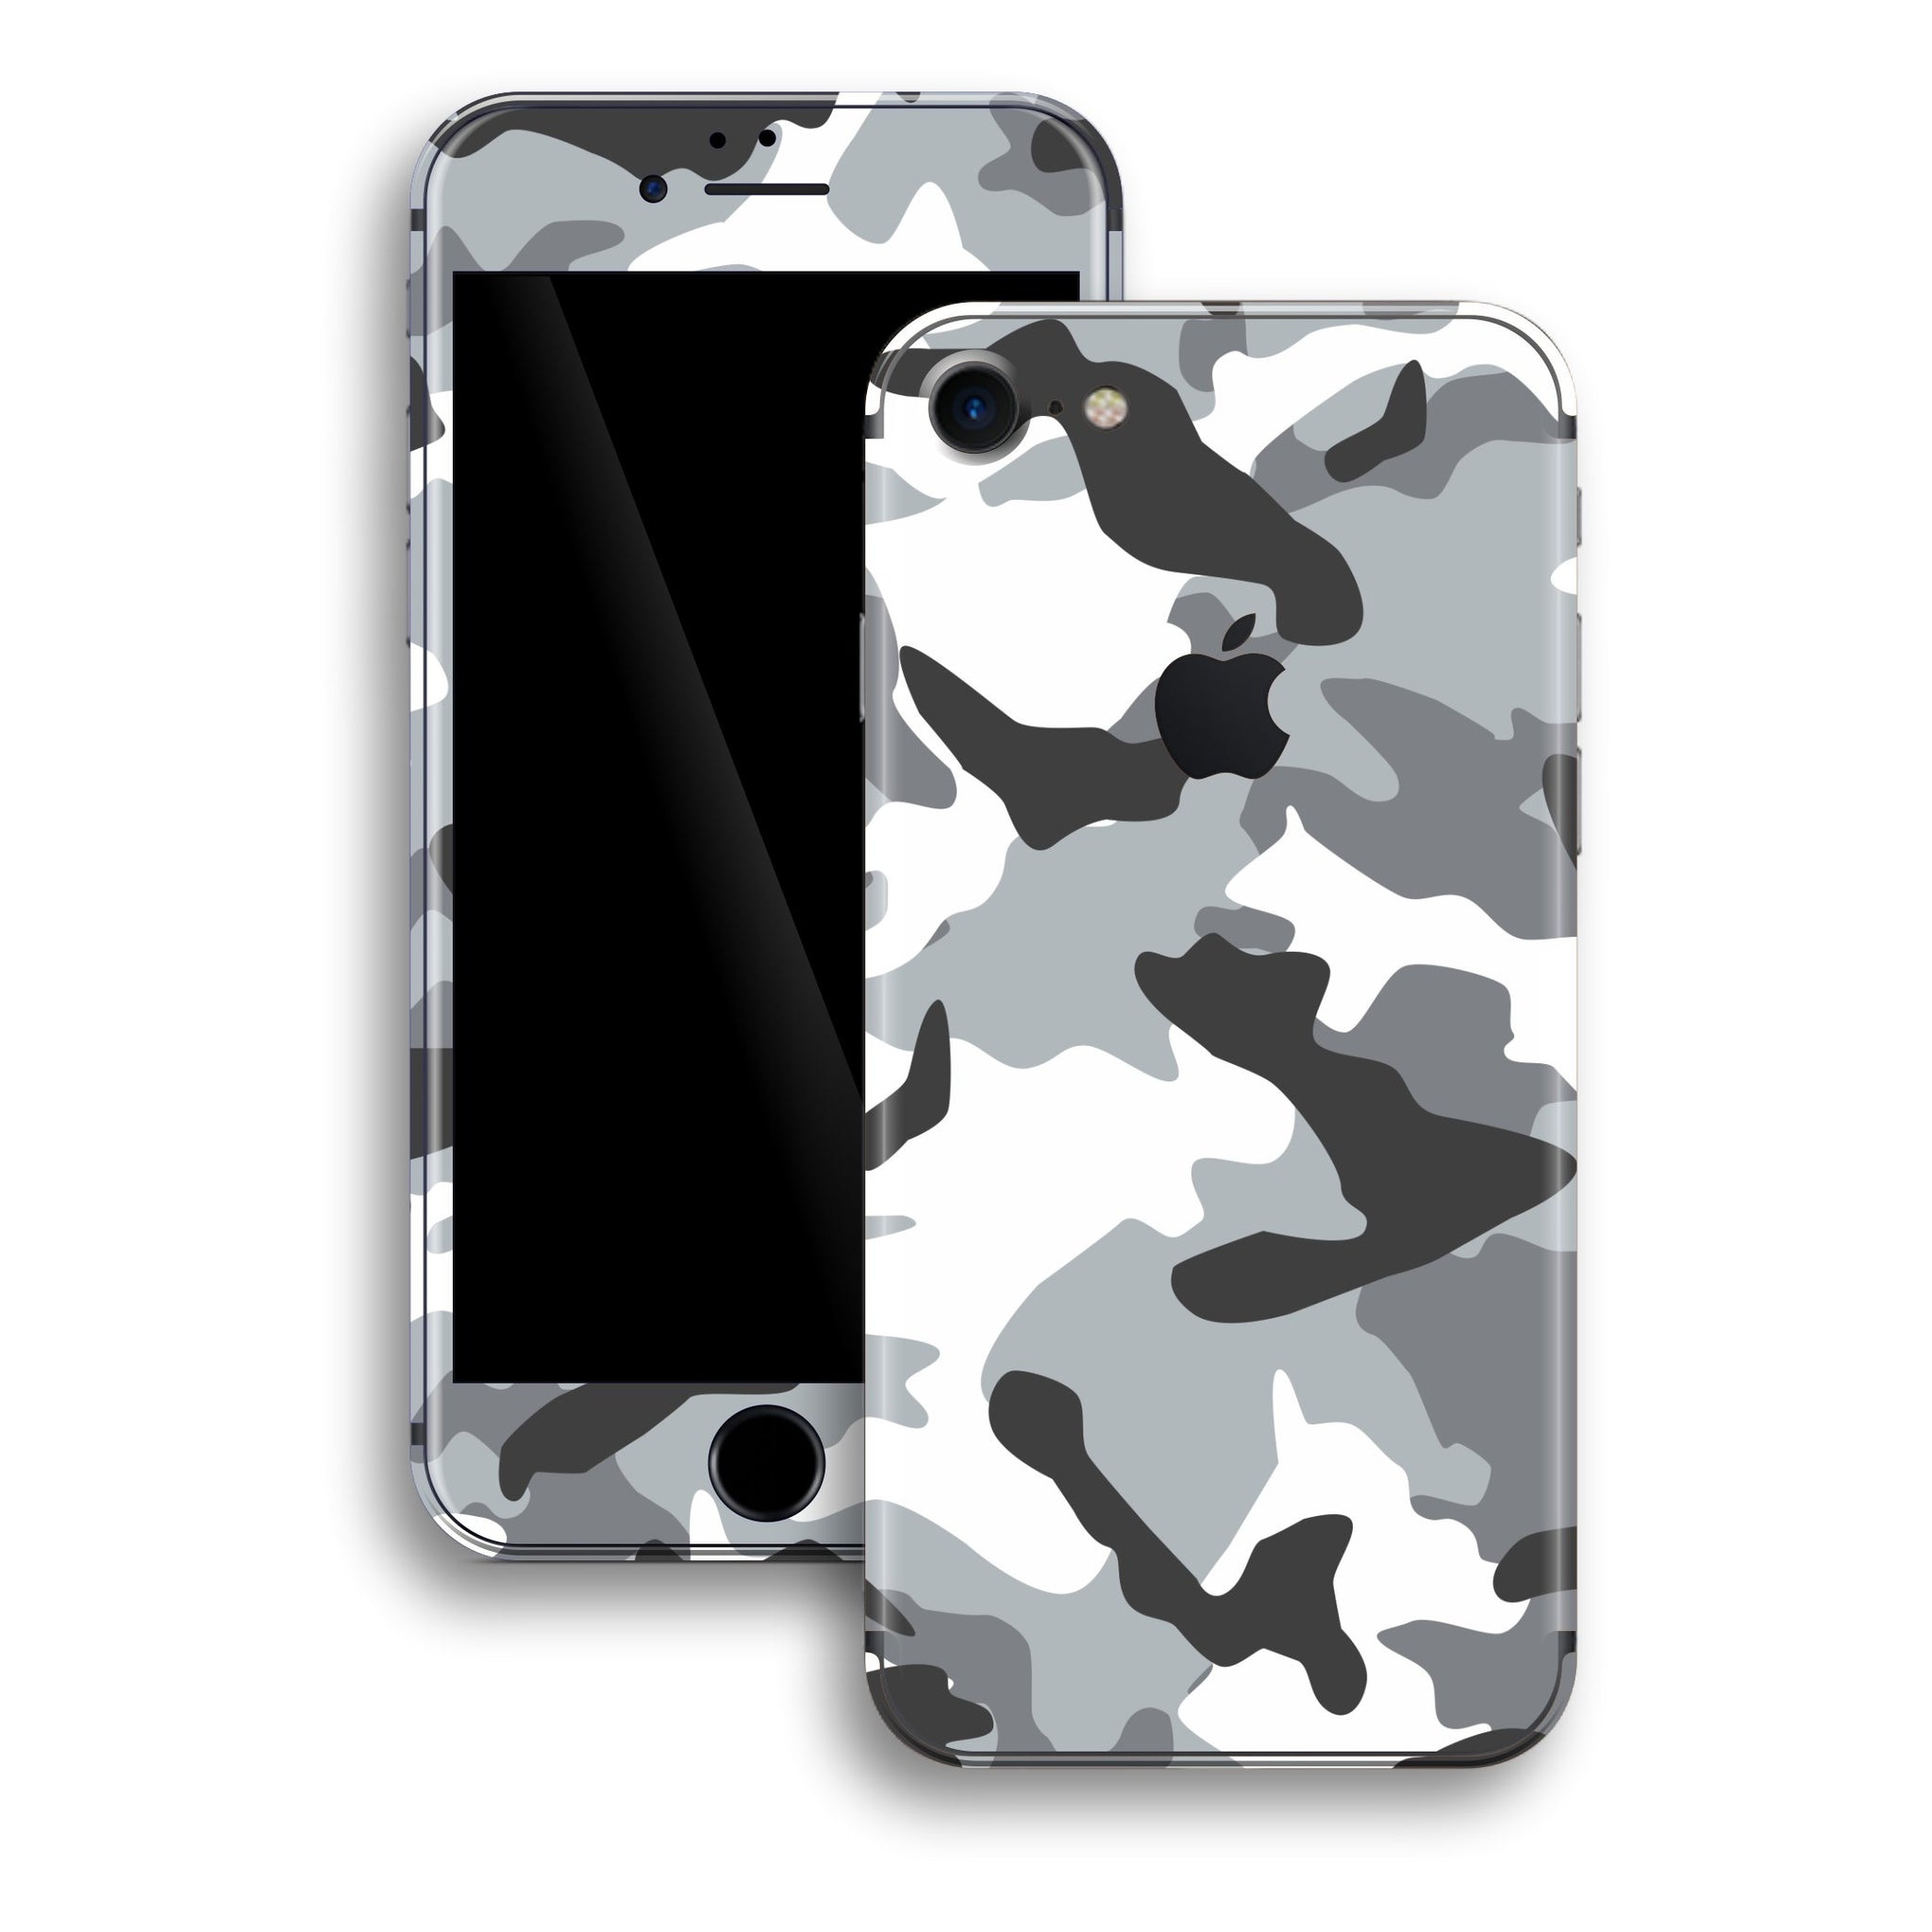 iPhone 8 Print Custom Signature GREY Camouflage Skin Wrap Decal by EasySkinz